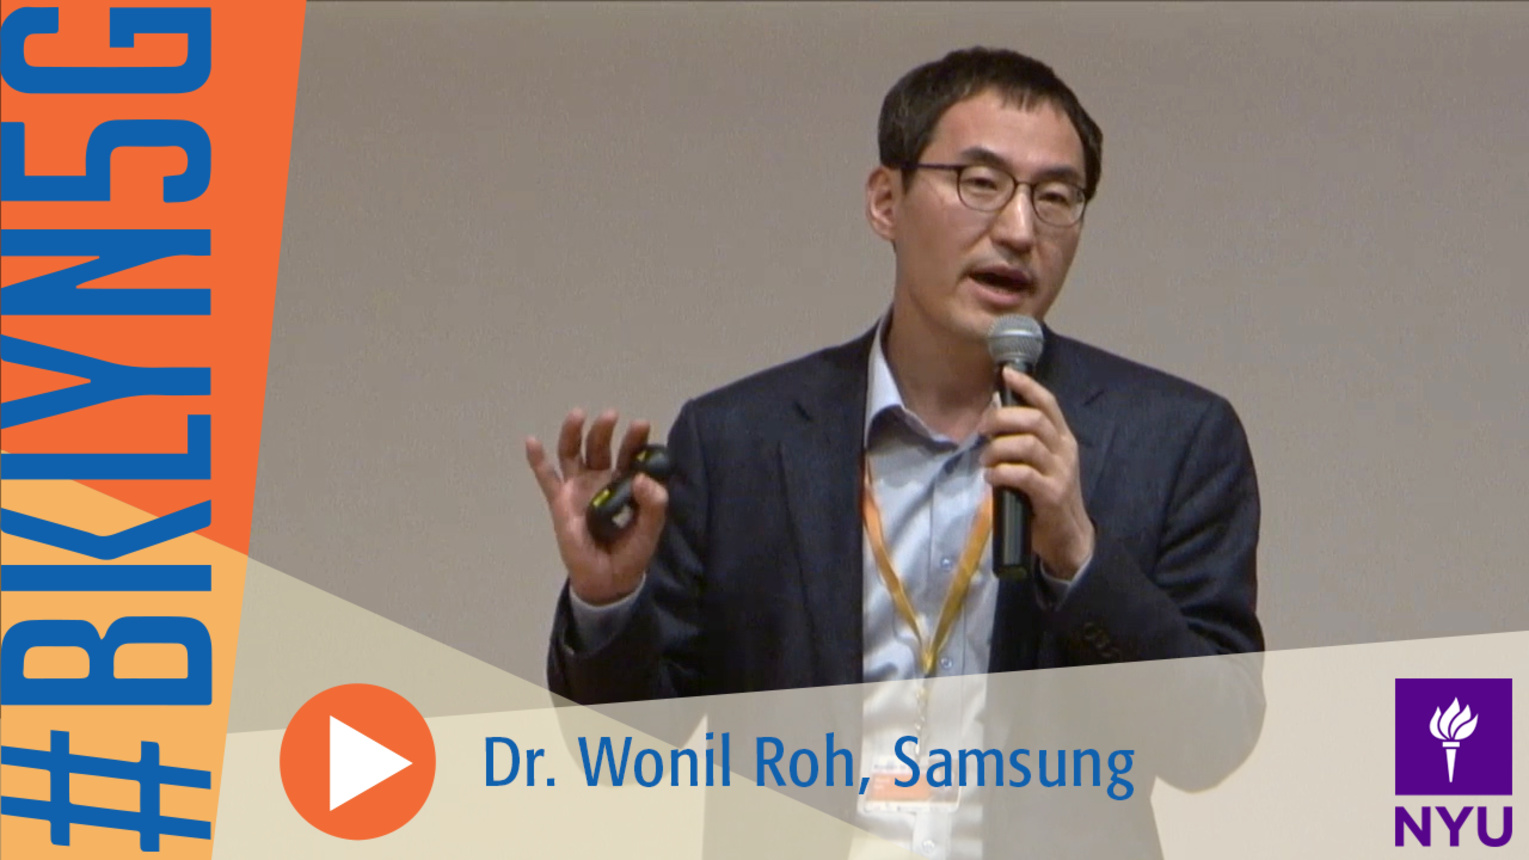 The Brooklyn 5G Summit: Wonil Roh of Samsung